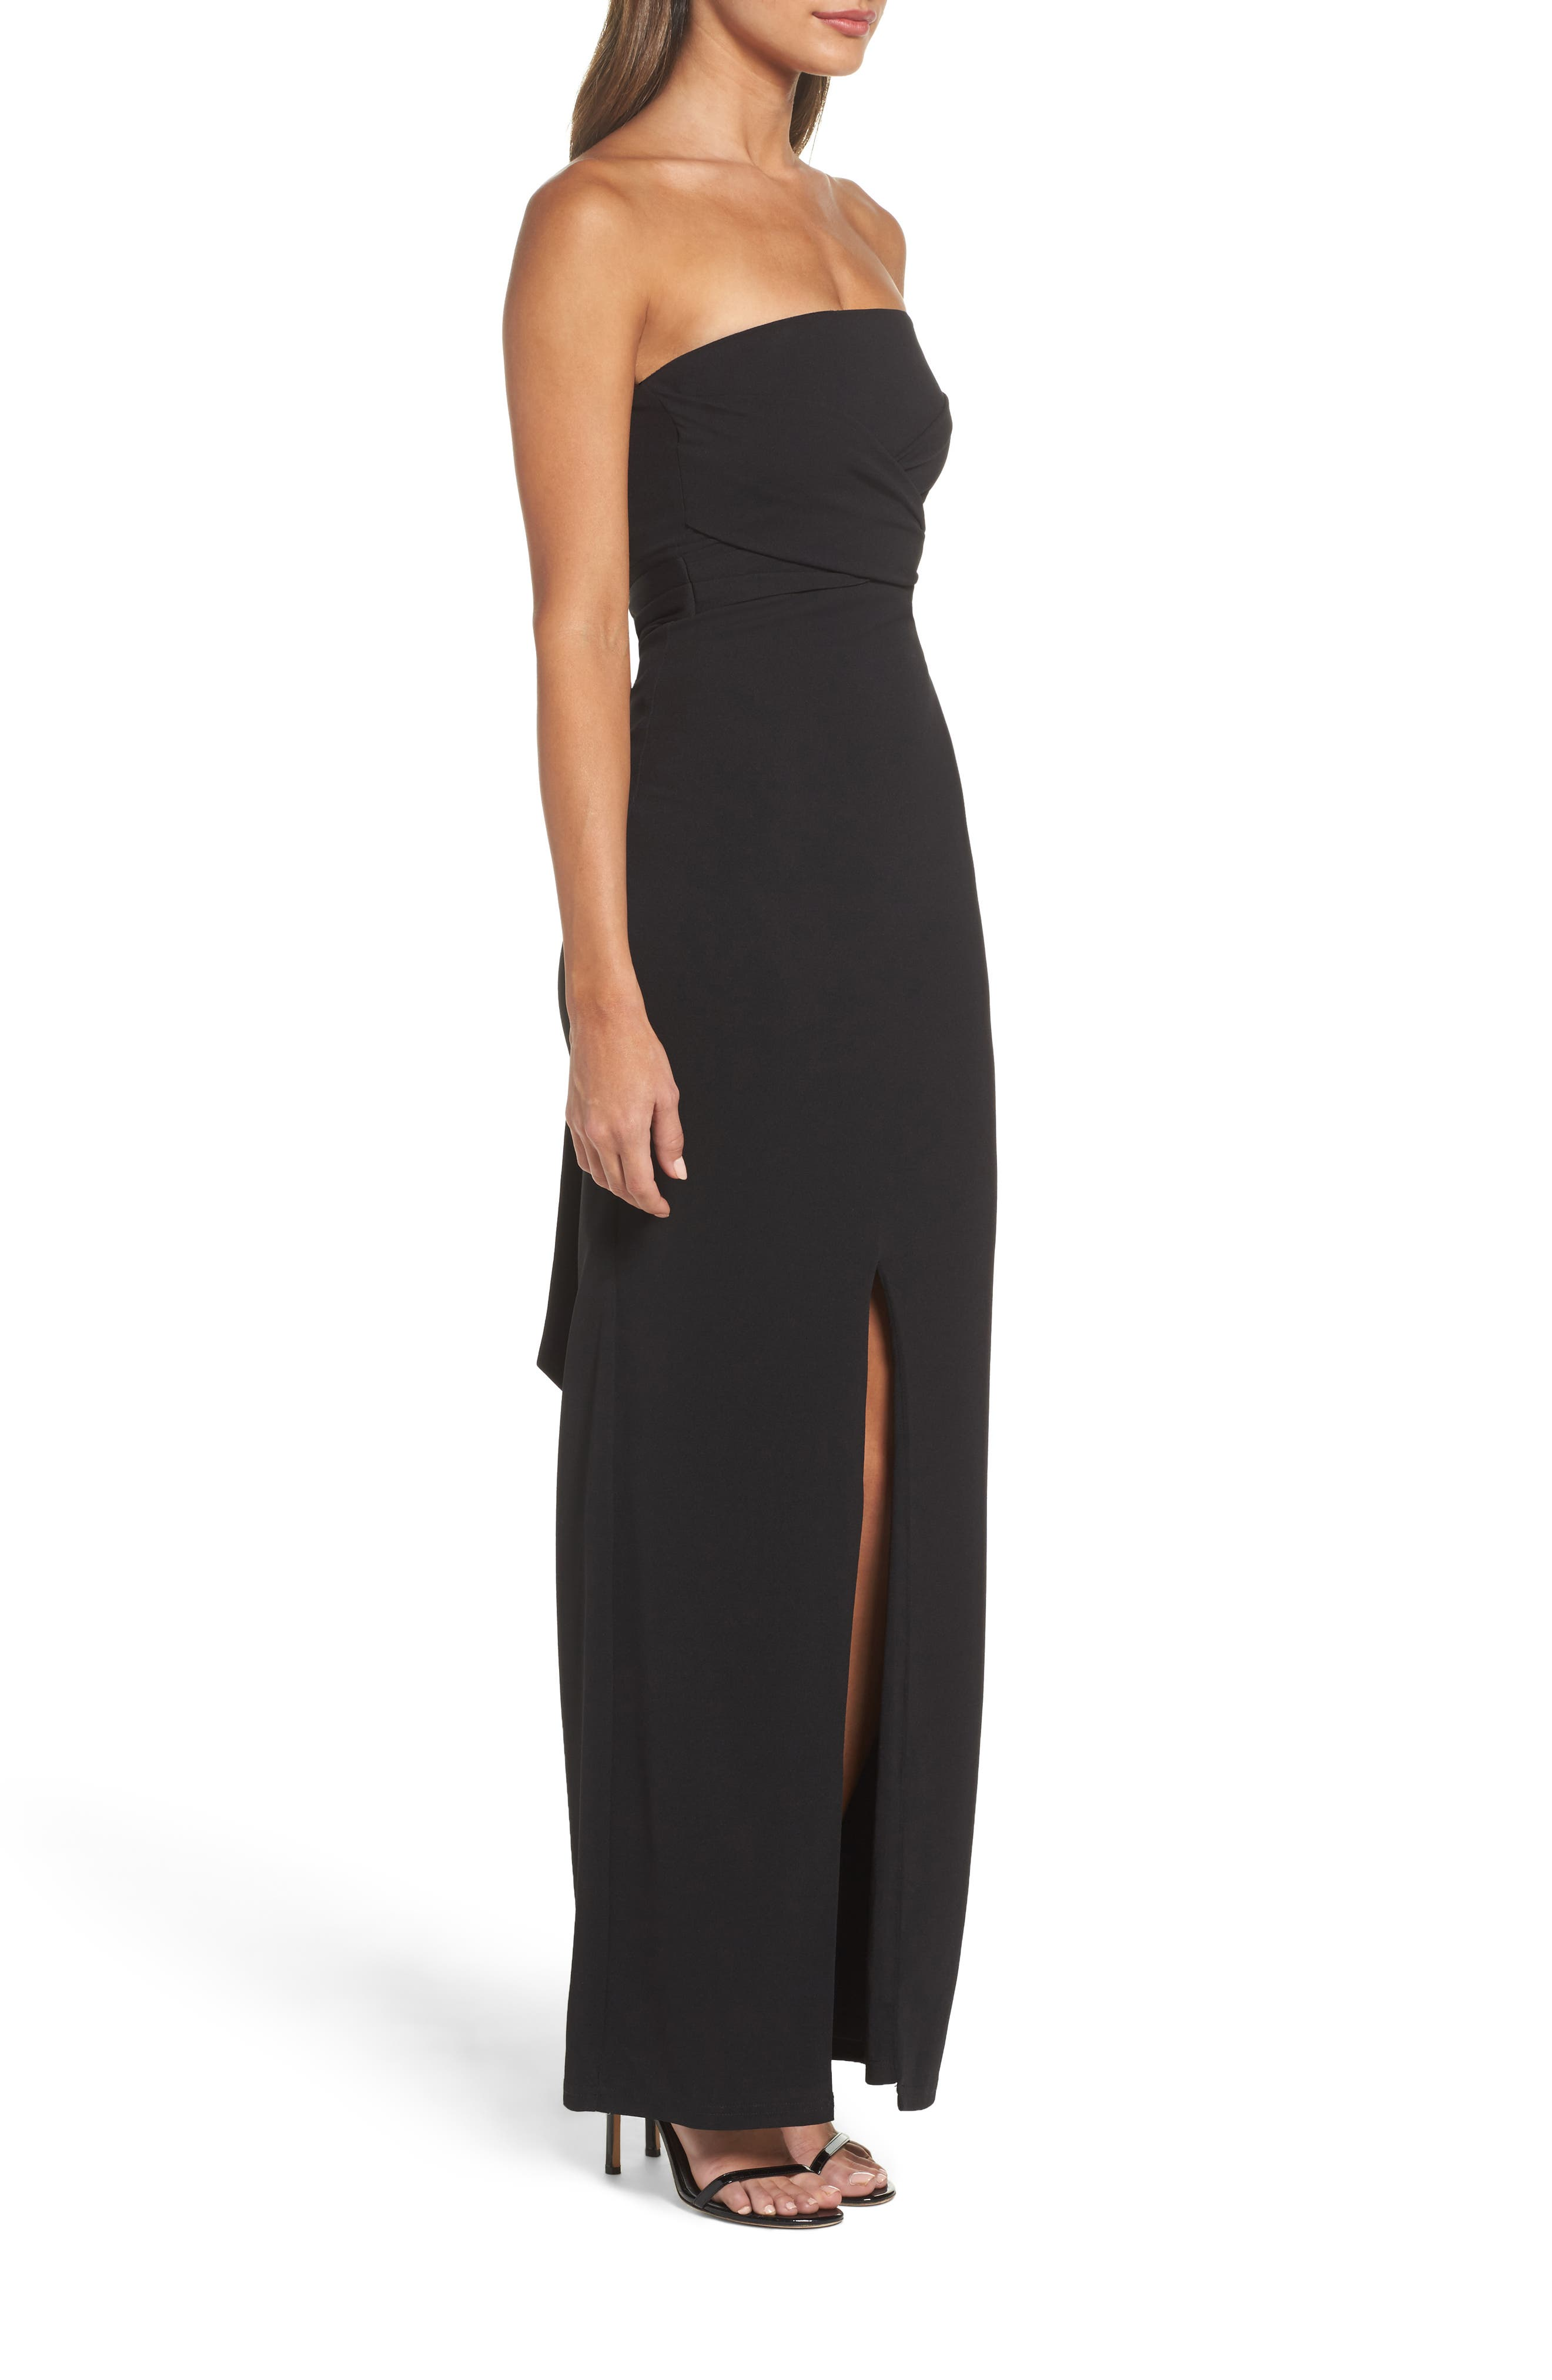 Own the Night Strapless Maxi Dress,                             Alternate thumbnail 3, color,                             001